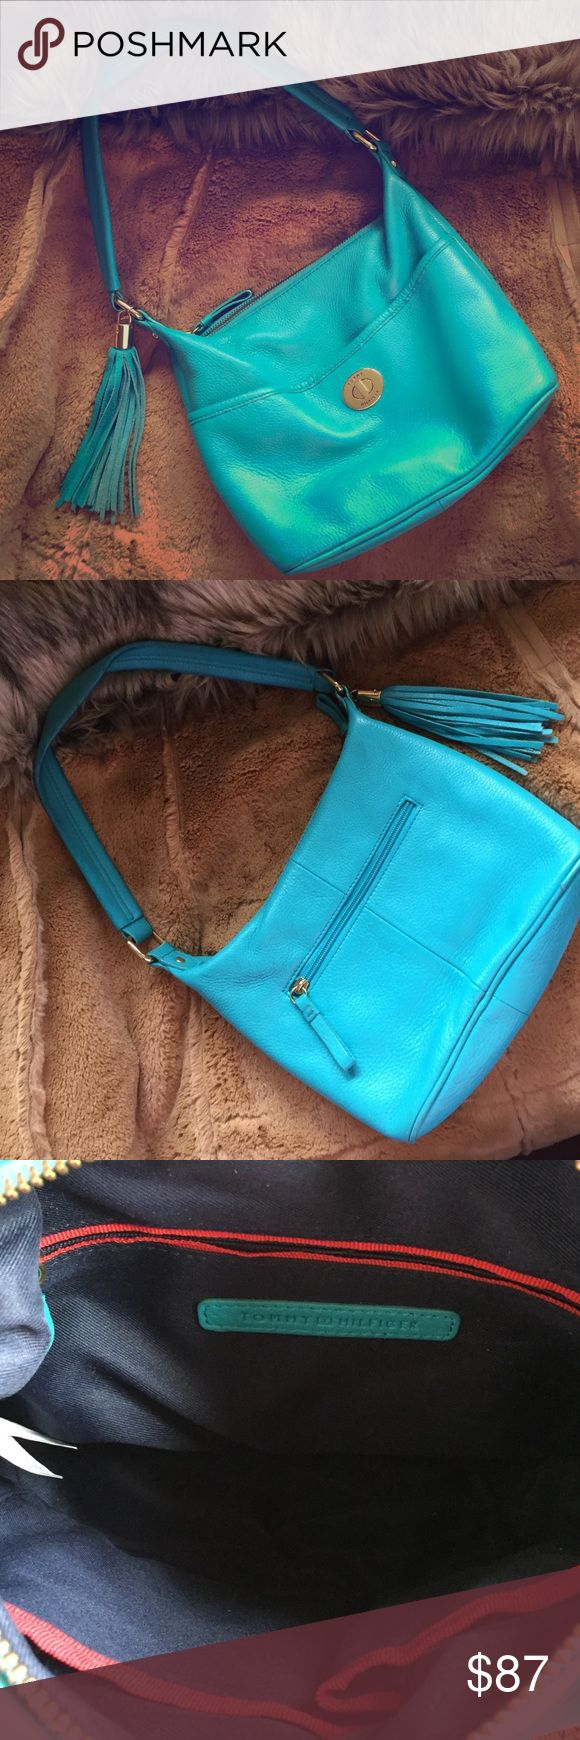 Tommy Hilfiger Bag Turquoise Genuine Leather GUC inside very clean and zipper works fine.  Check out the Tommy Boots and receive a bundle discount! Tommy Hilfiger Bags Shoulder Bags